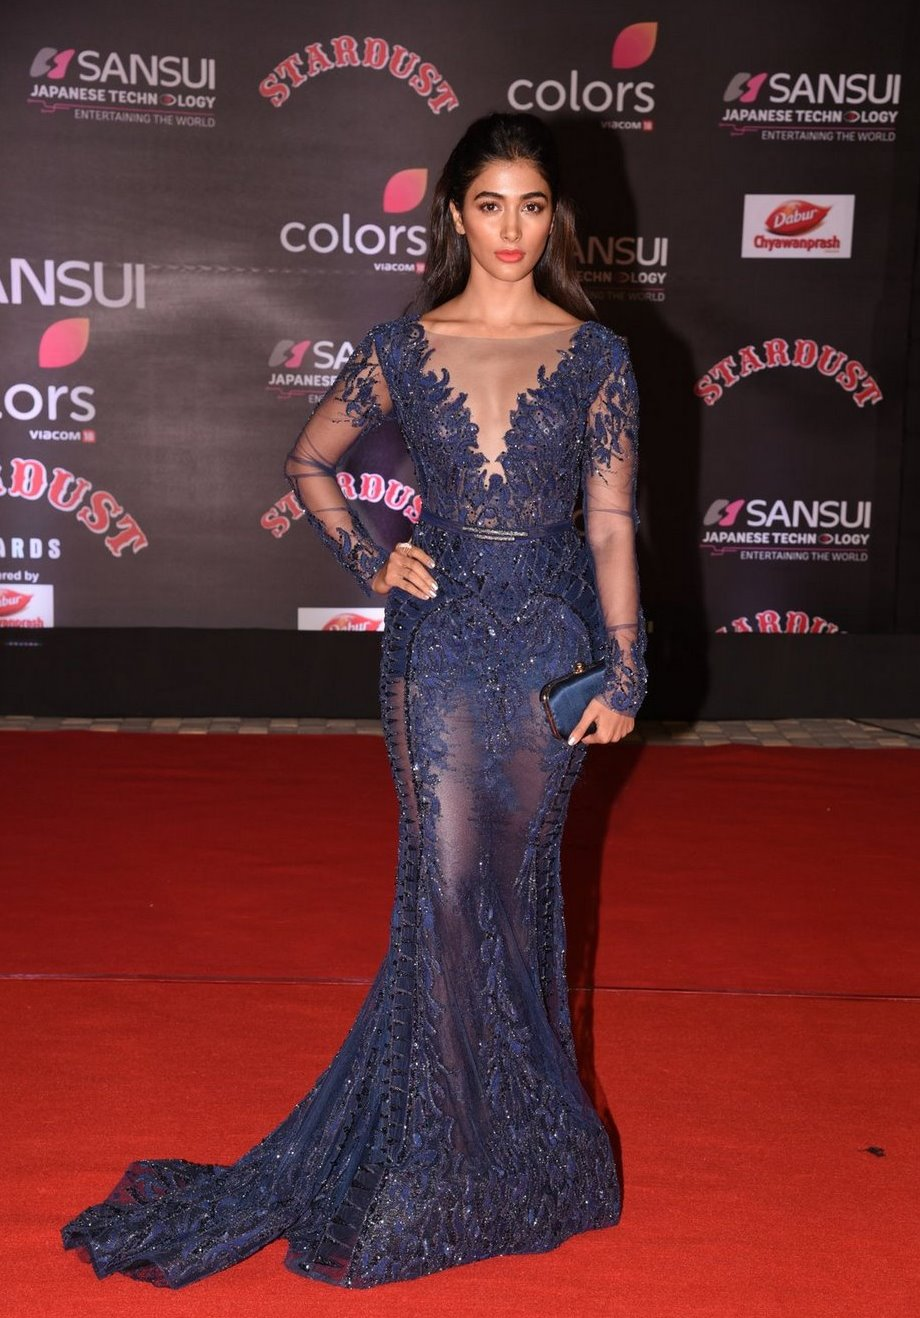 Pooja Hegde In Blue Dress At Star Dust Awards